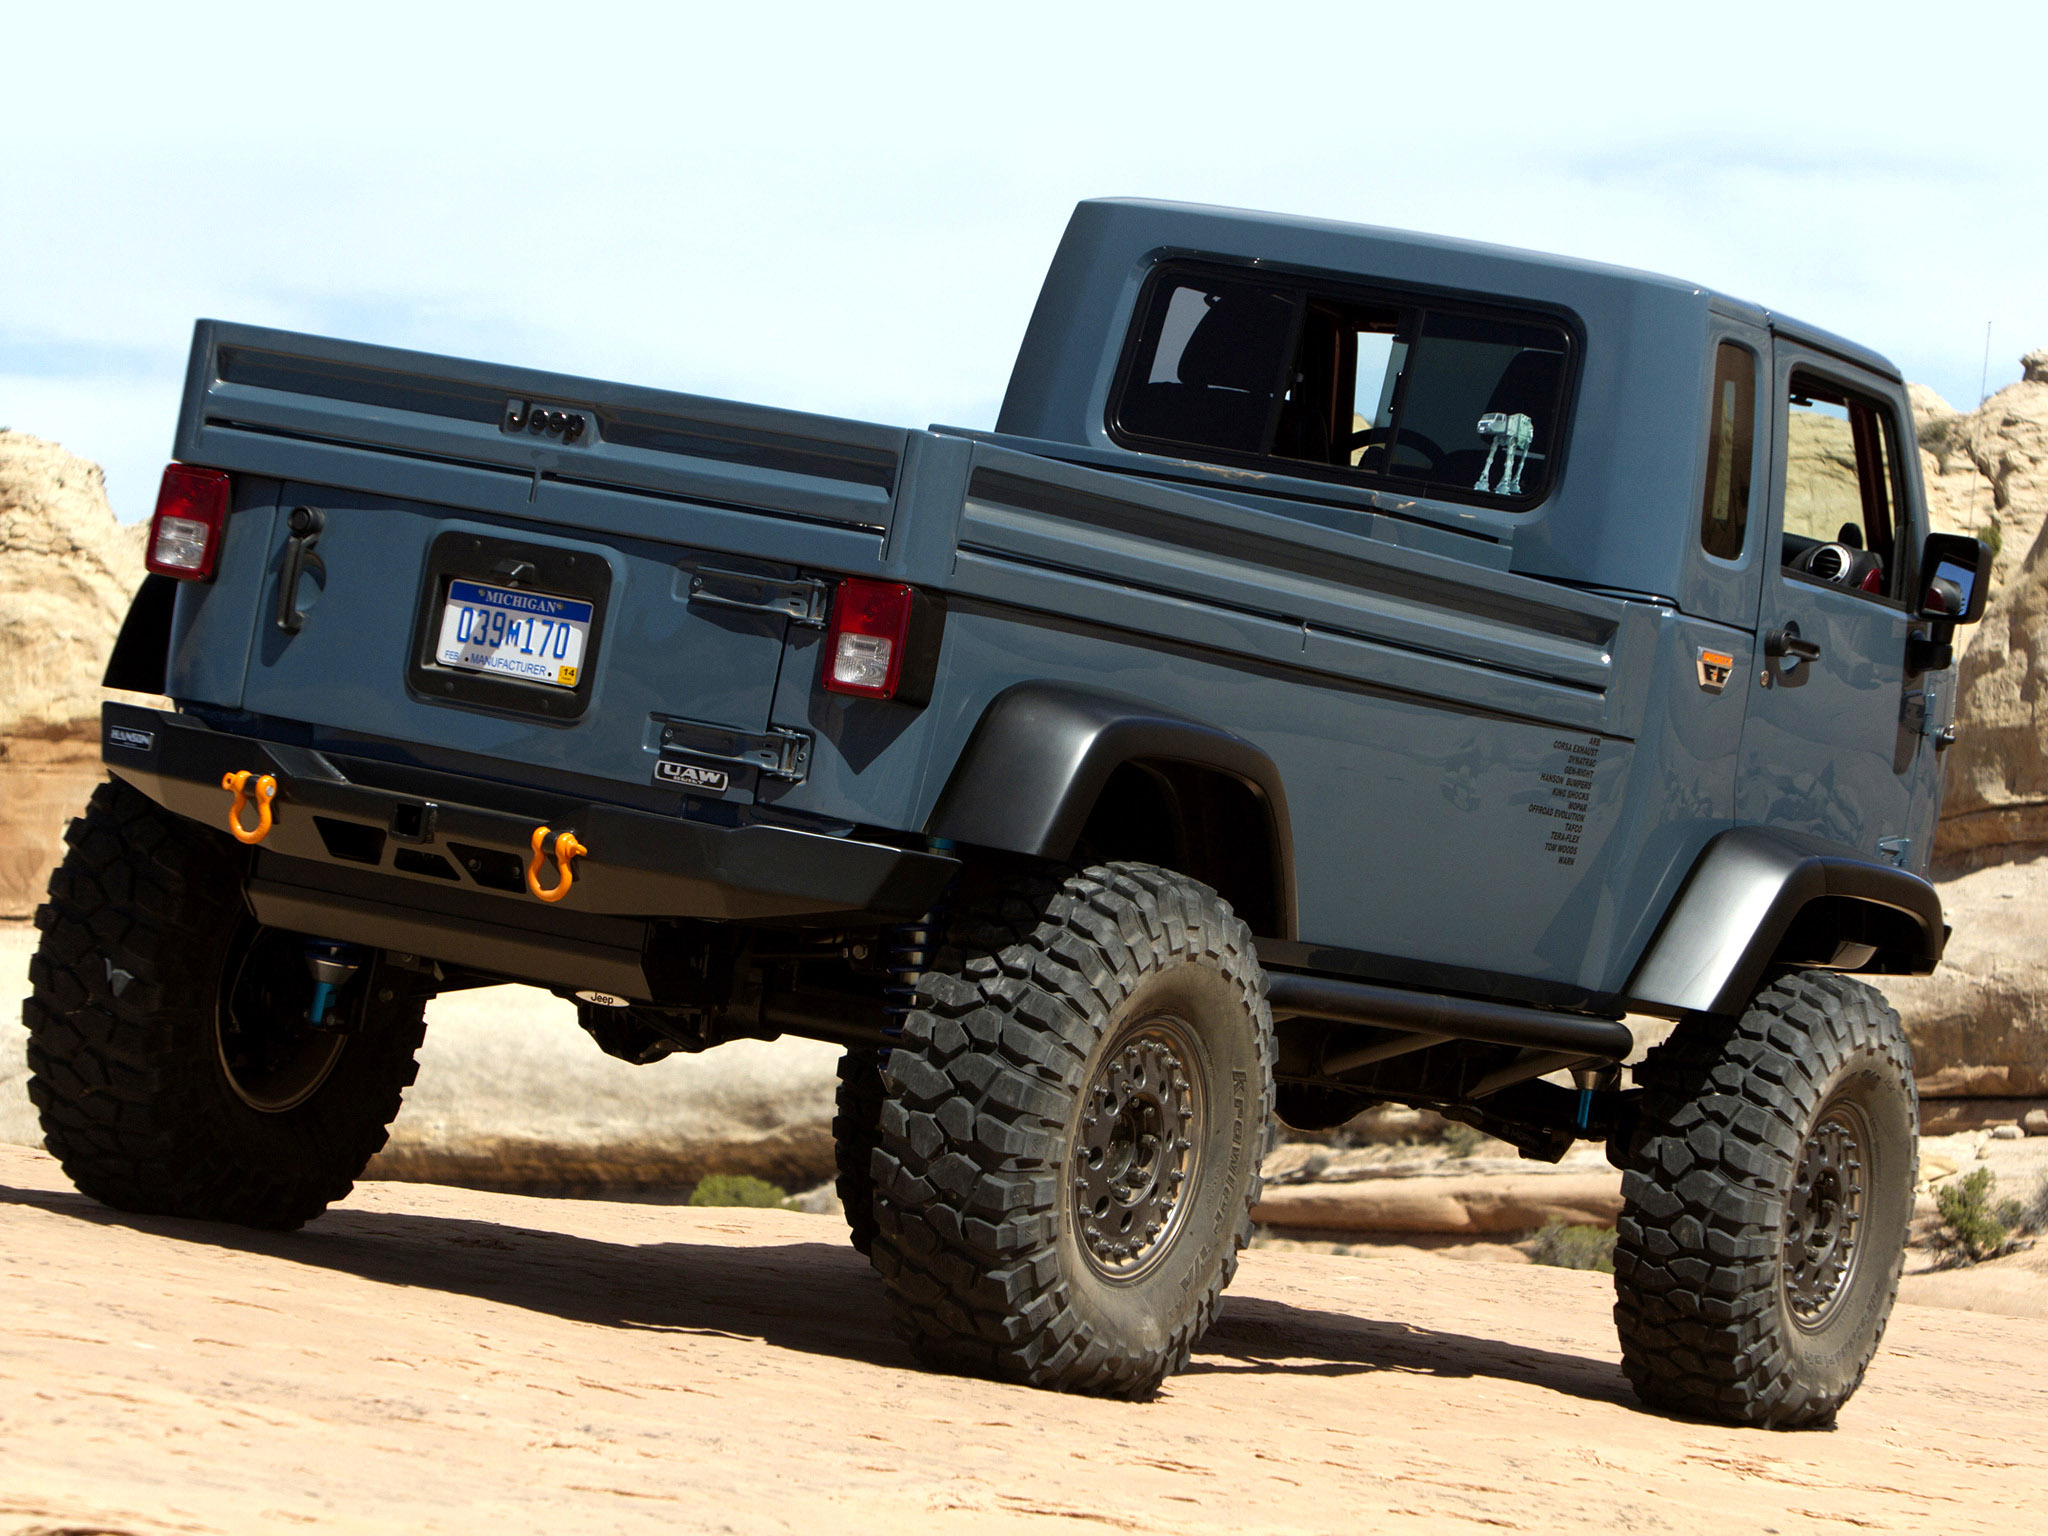 Jeep mighty fc concept offroad truck d wallpaper